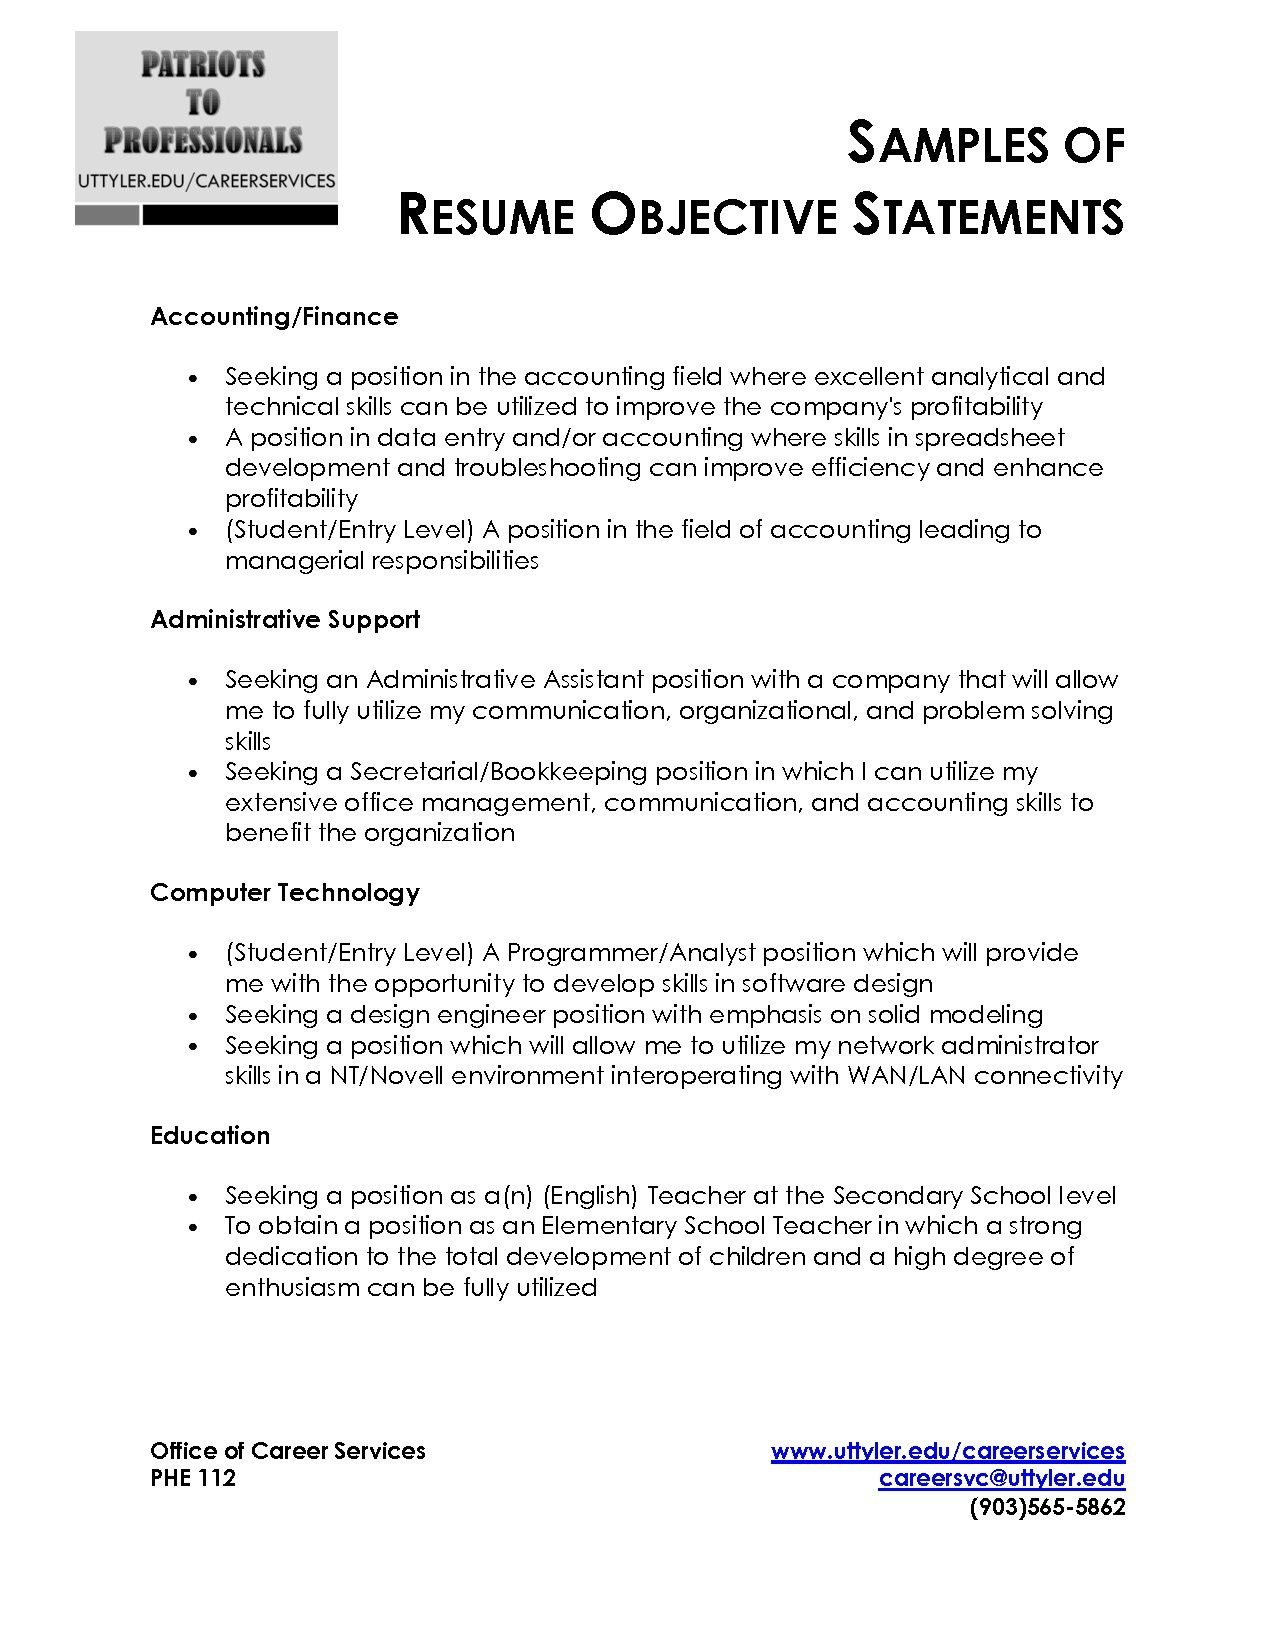 sample resume objective statement free templates examples out of college financial Resume Resume Objective Statement